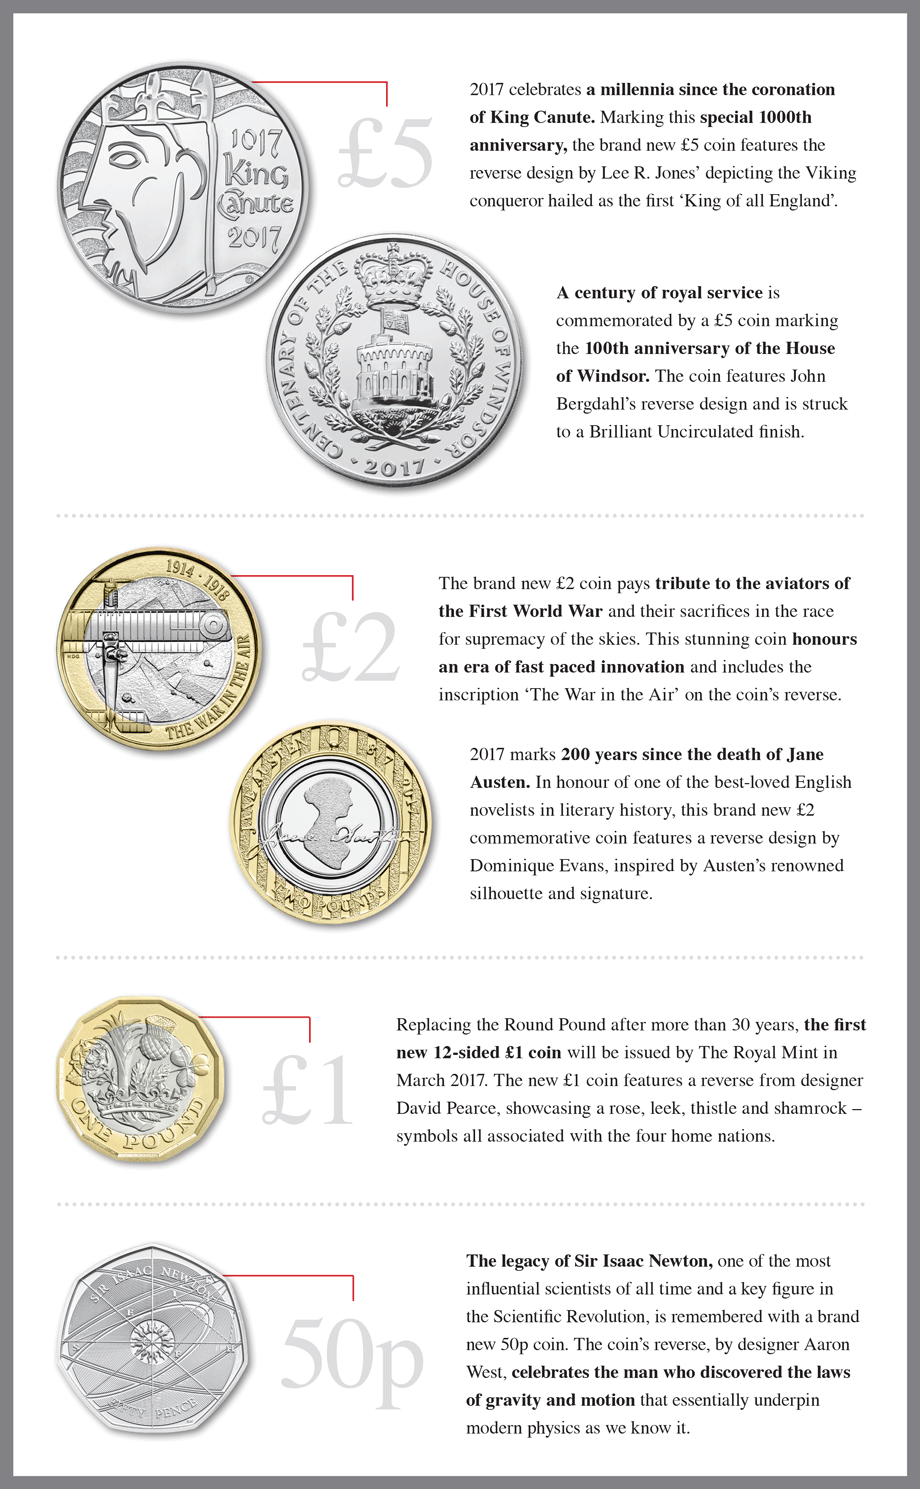 image1 - Unveiled today: The UK's 2017 coin designs